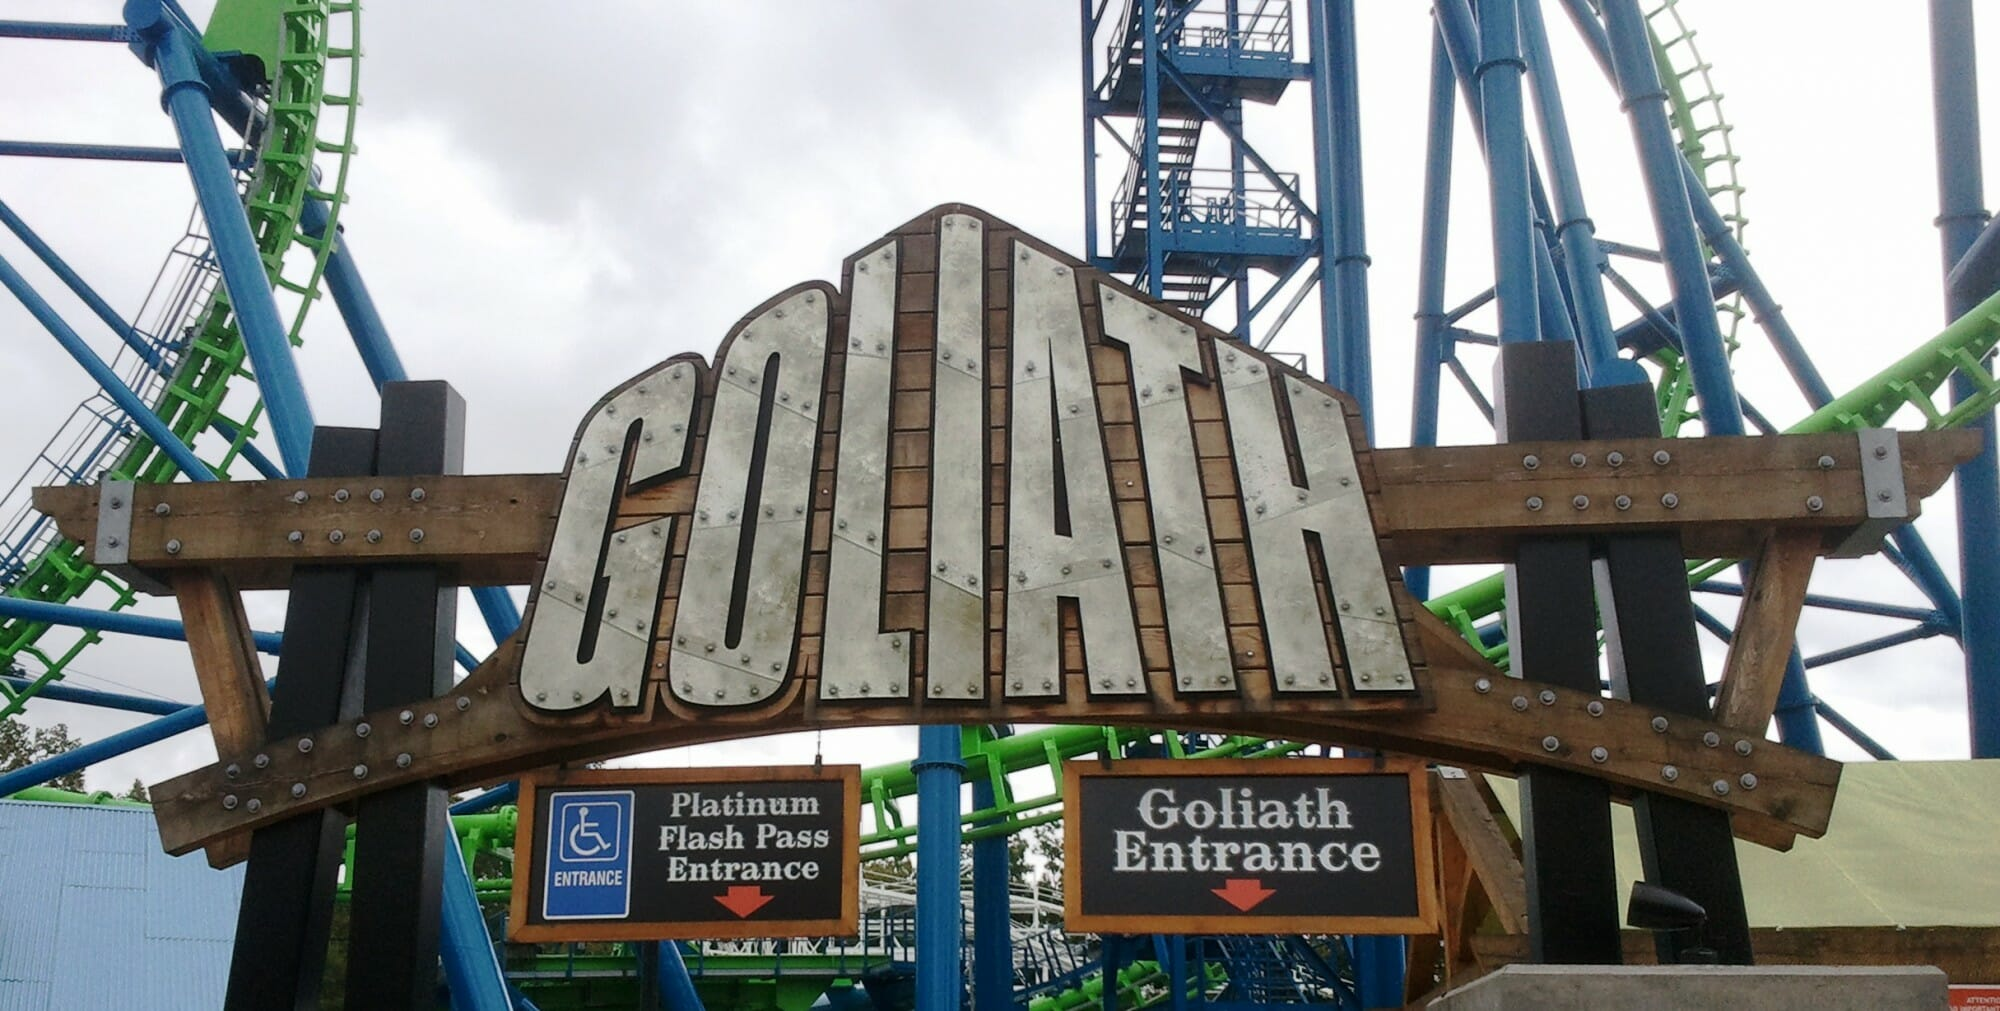 Timbers for Goliath Sign